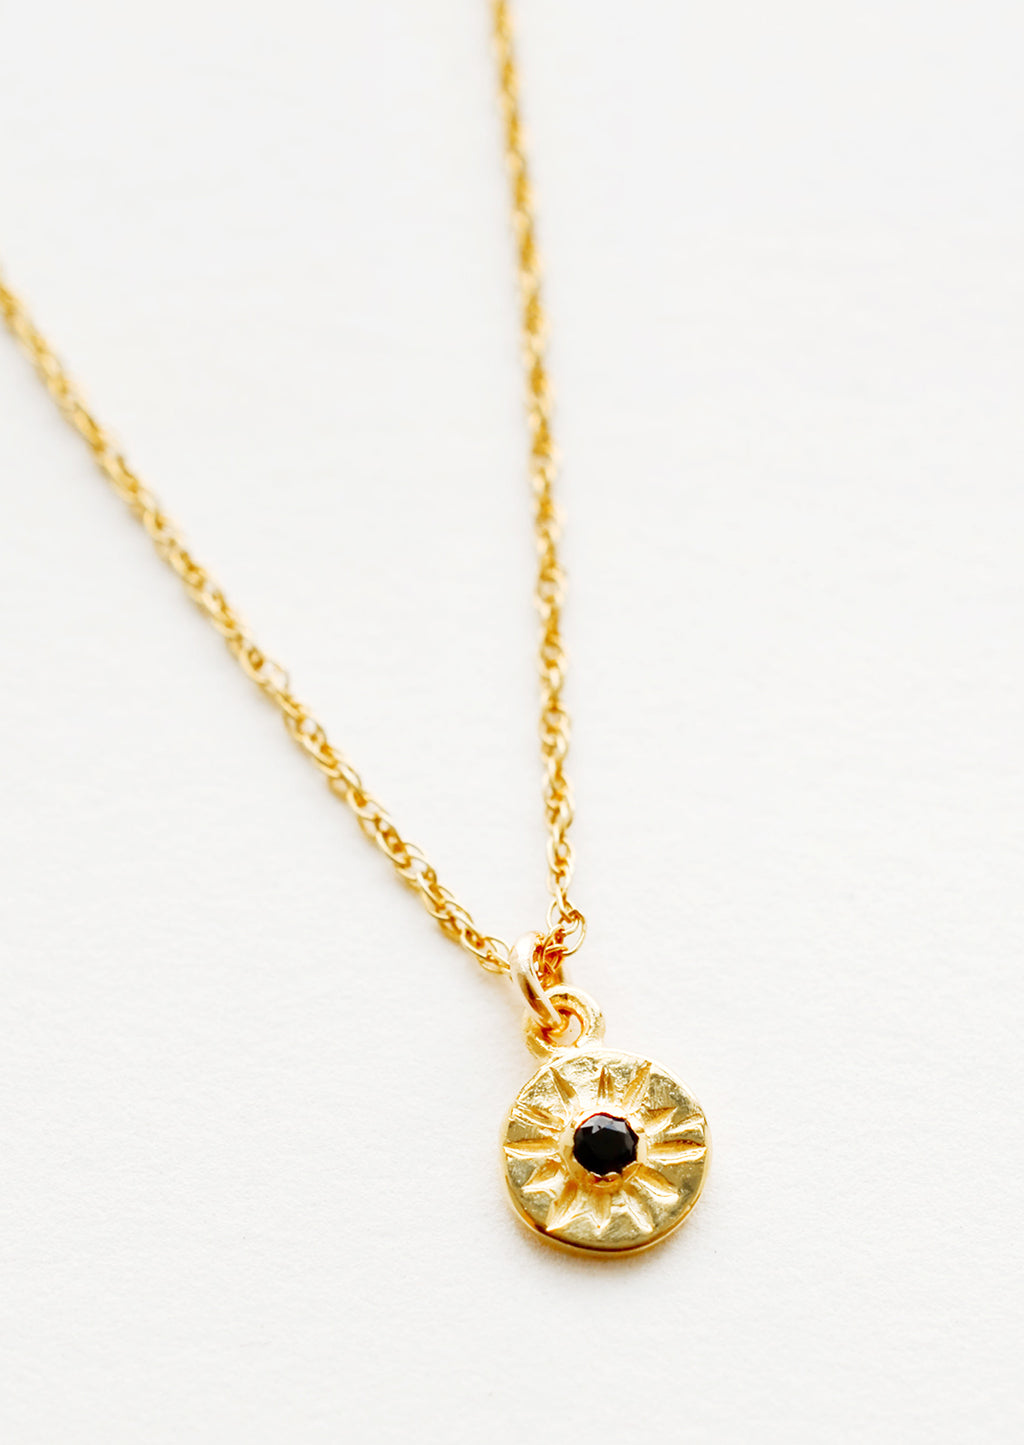 Black Spinel: Detail of necklace with thin gold chain and small golden pendant with black stone at center.